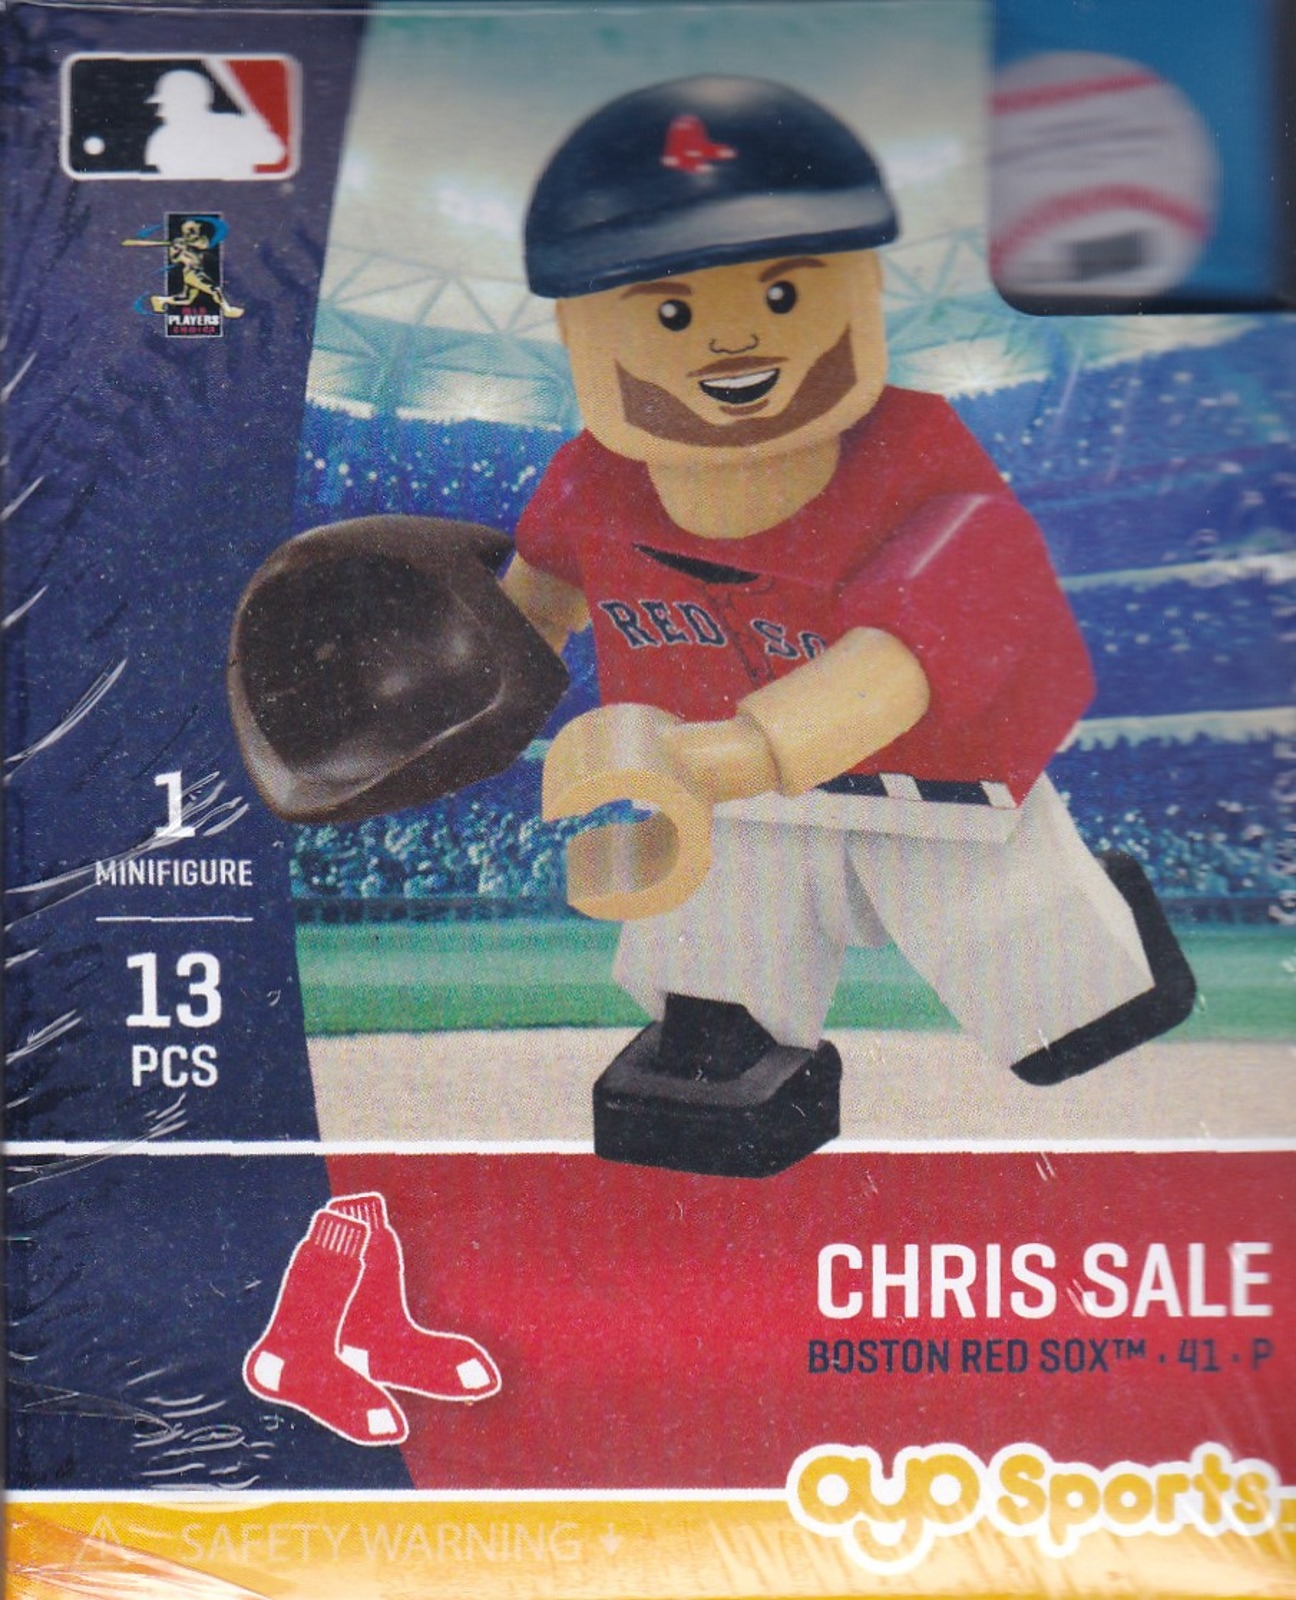 Chris Sale Pitcher OYO Baseball figure Generation 5 Series 1 Boston Red Sox